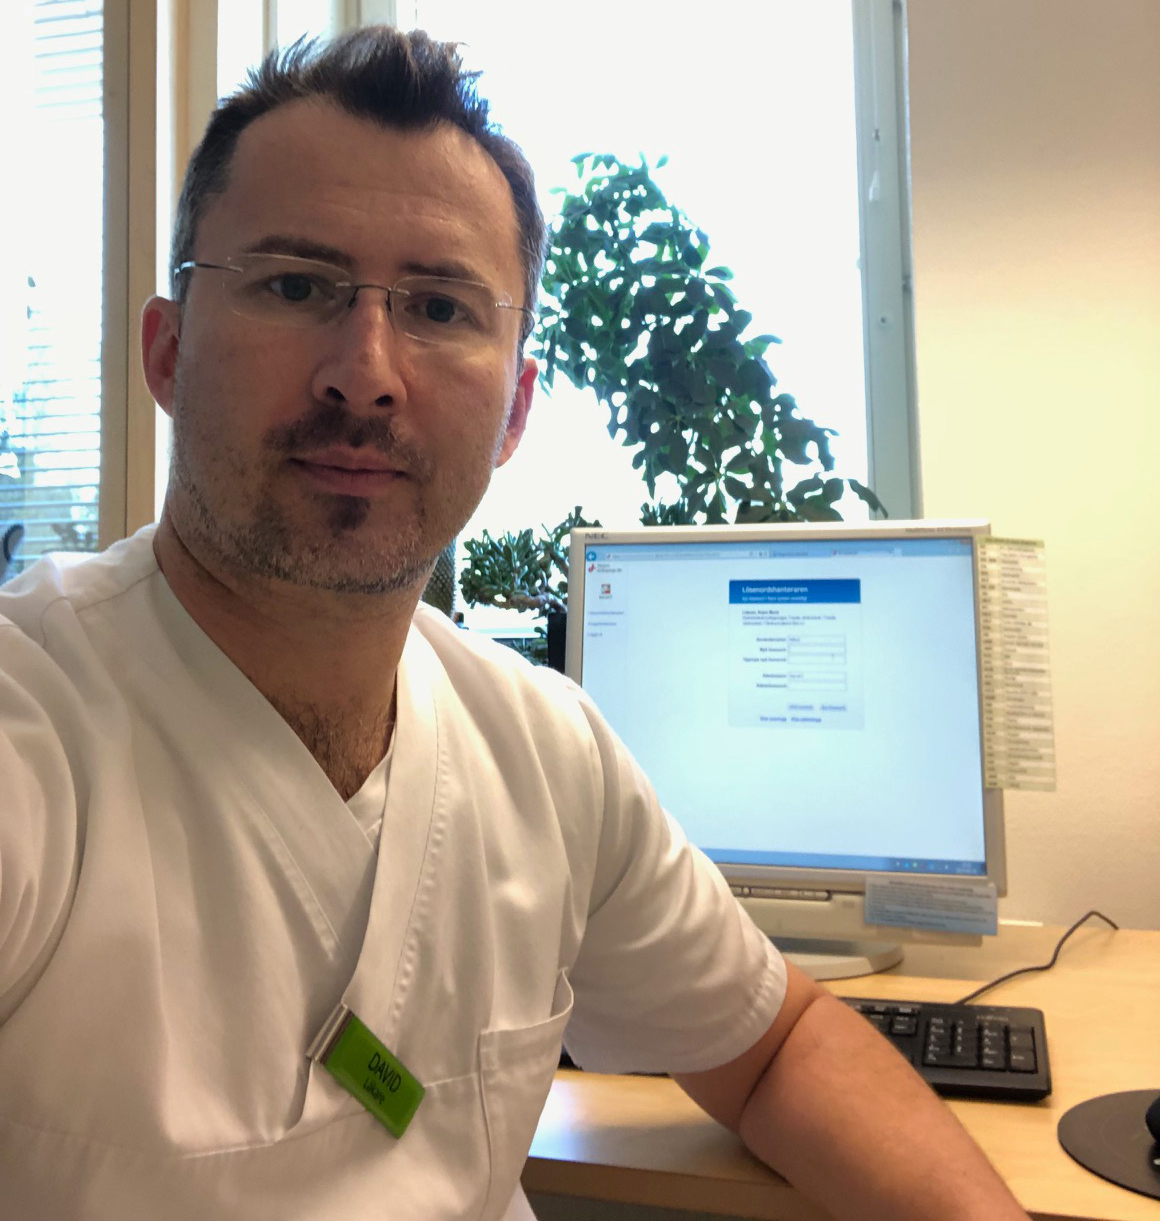 An interview with David Antoniu, a Family Doctor in Sweden